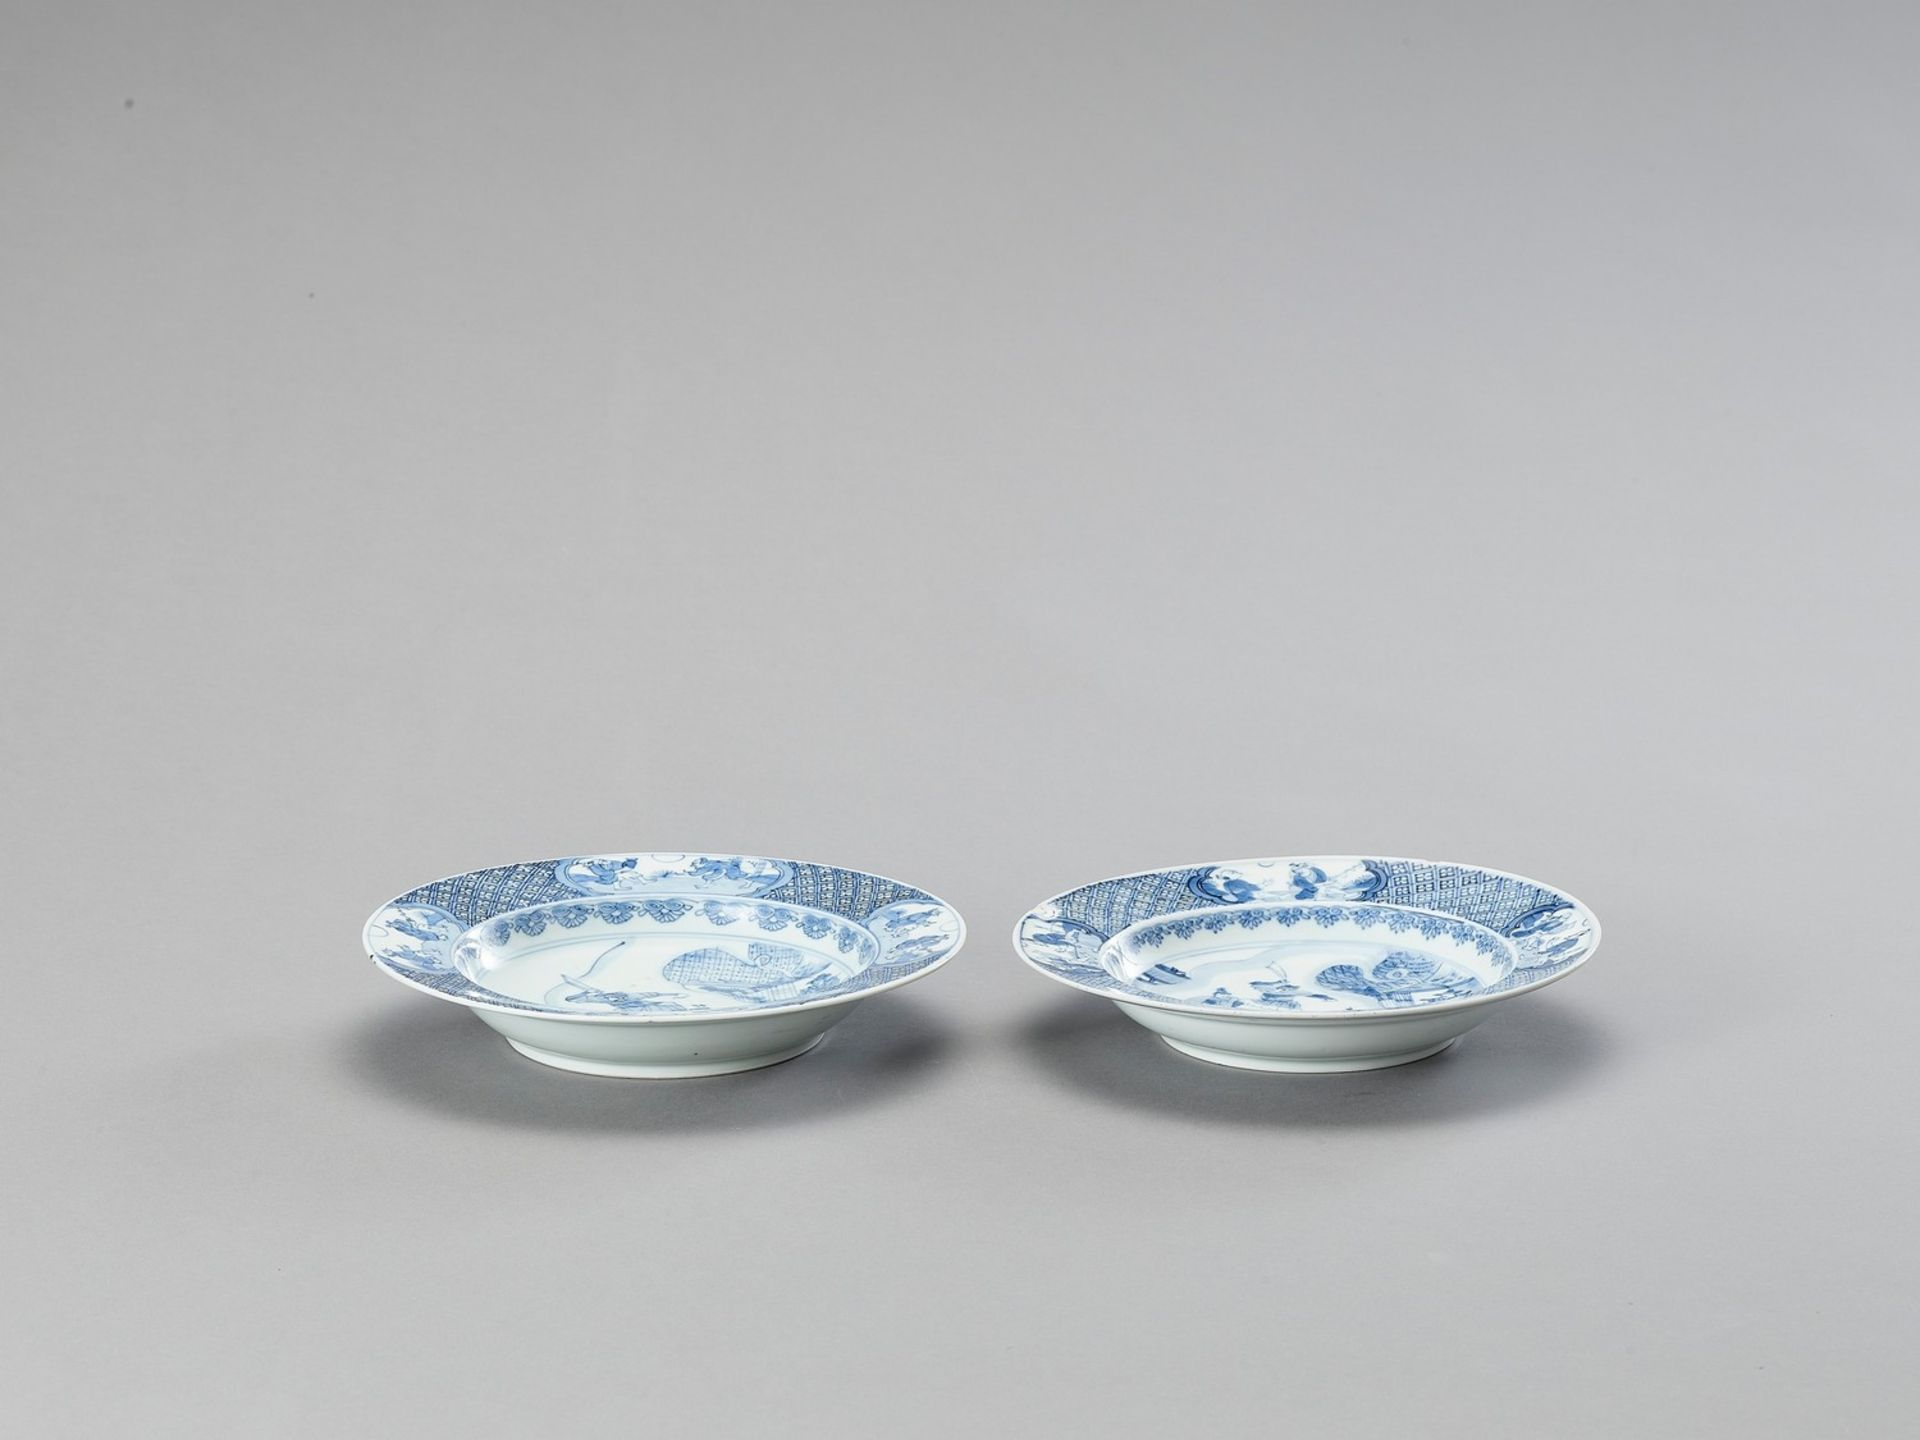 A PAIR OF BLUE AND WHITE PORCELAIN DISHES - Bild 2 aus 4